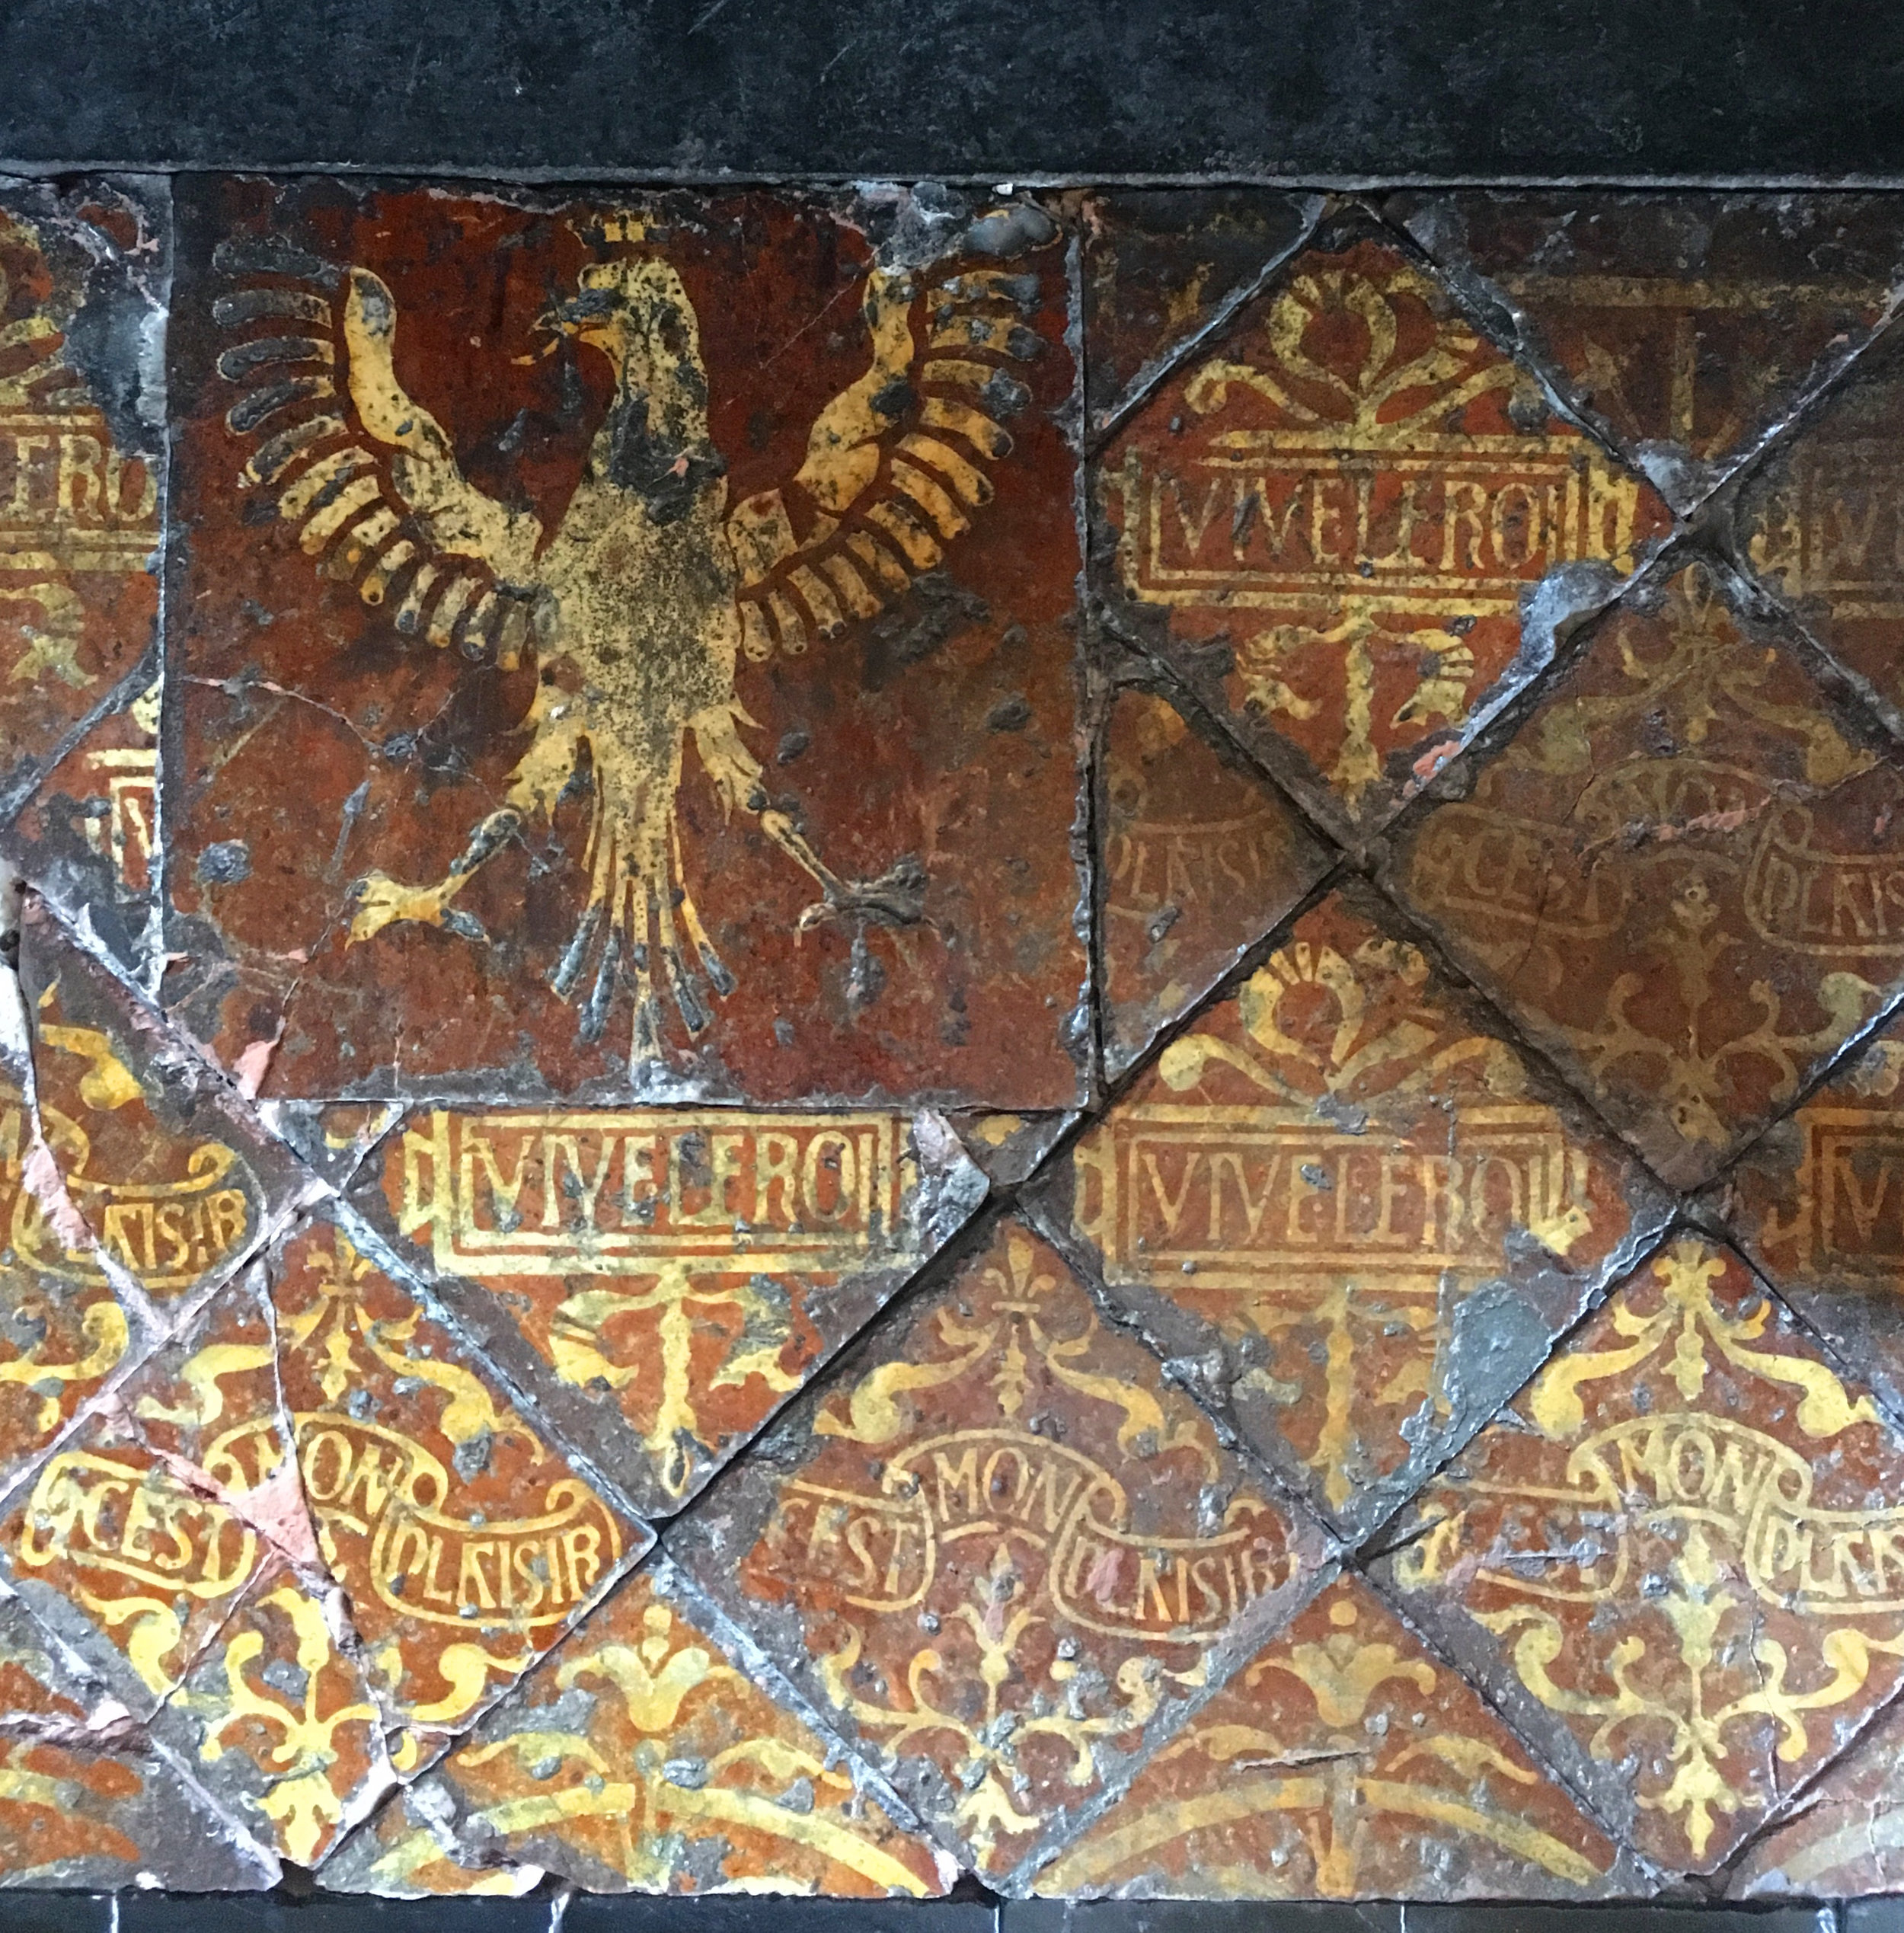 Early tiles that marry heraldry and mottos, Ancy le Franc Château (photograph J. Cook)